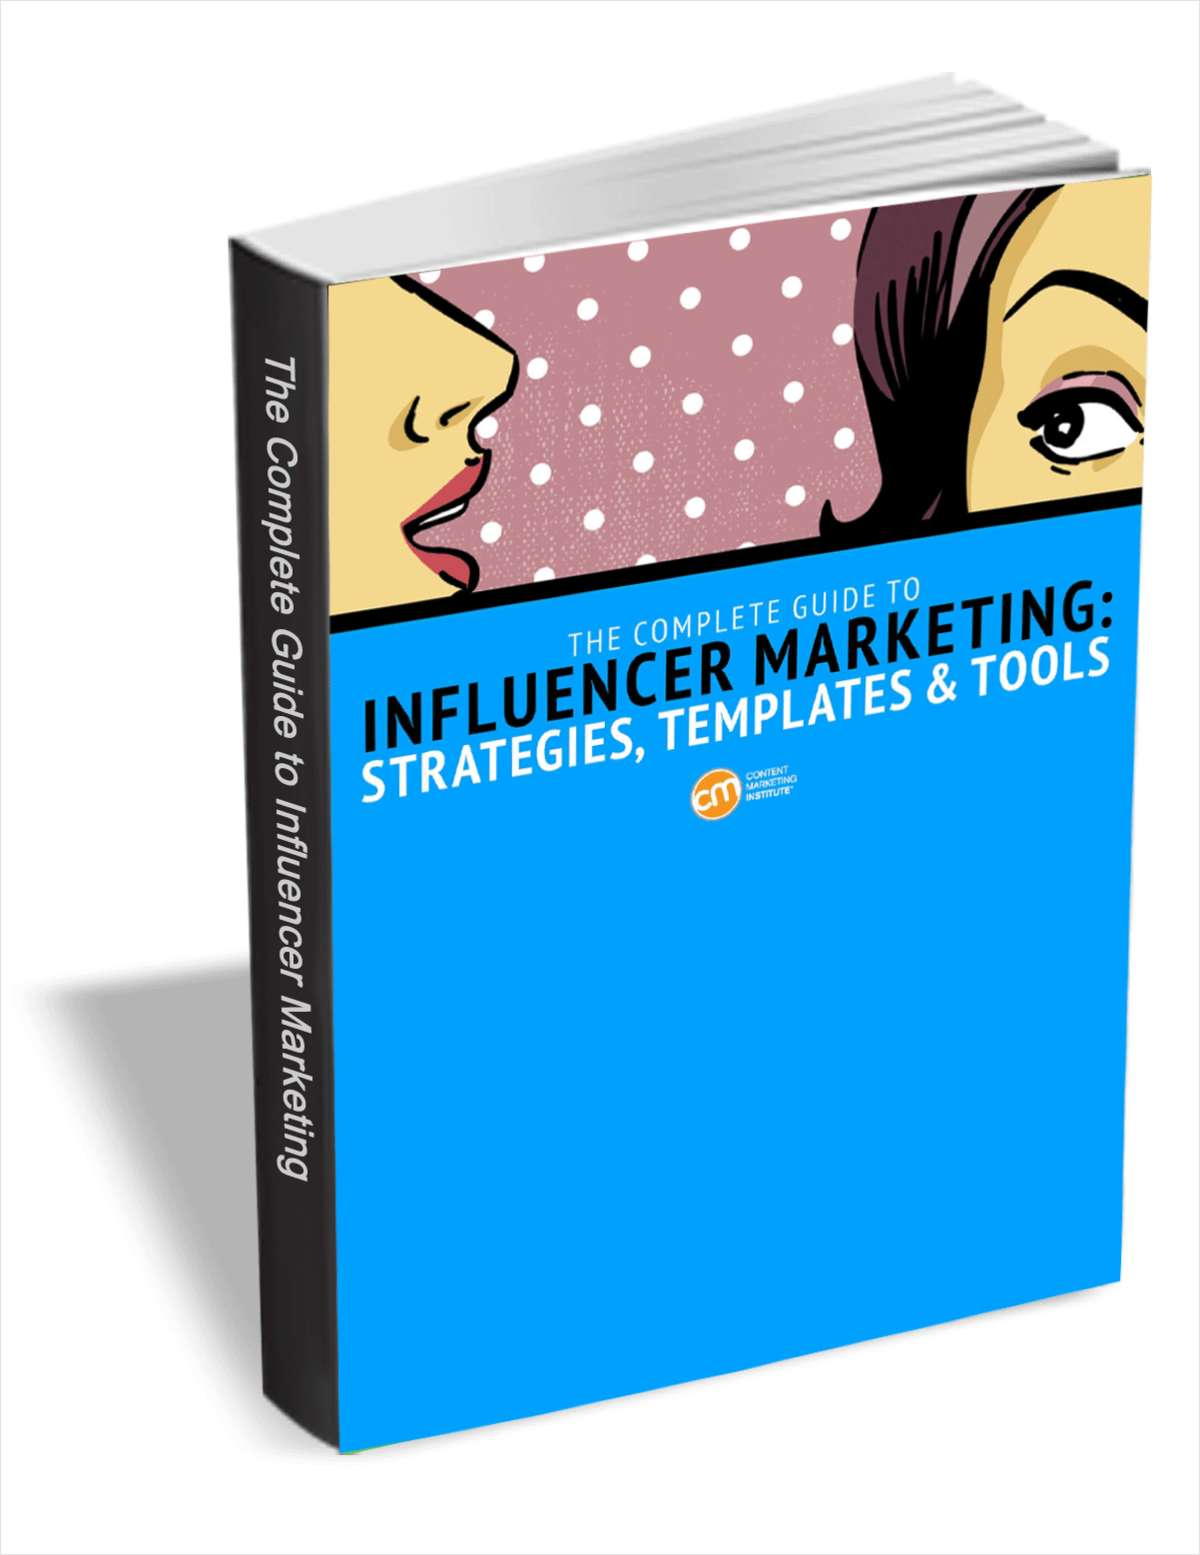 The Complete Guide to Influencer Marketing: Strategies, Templates & Tools